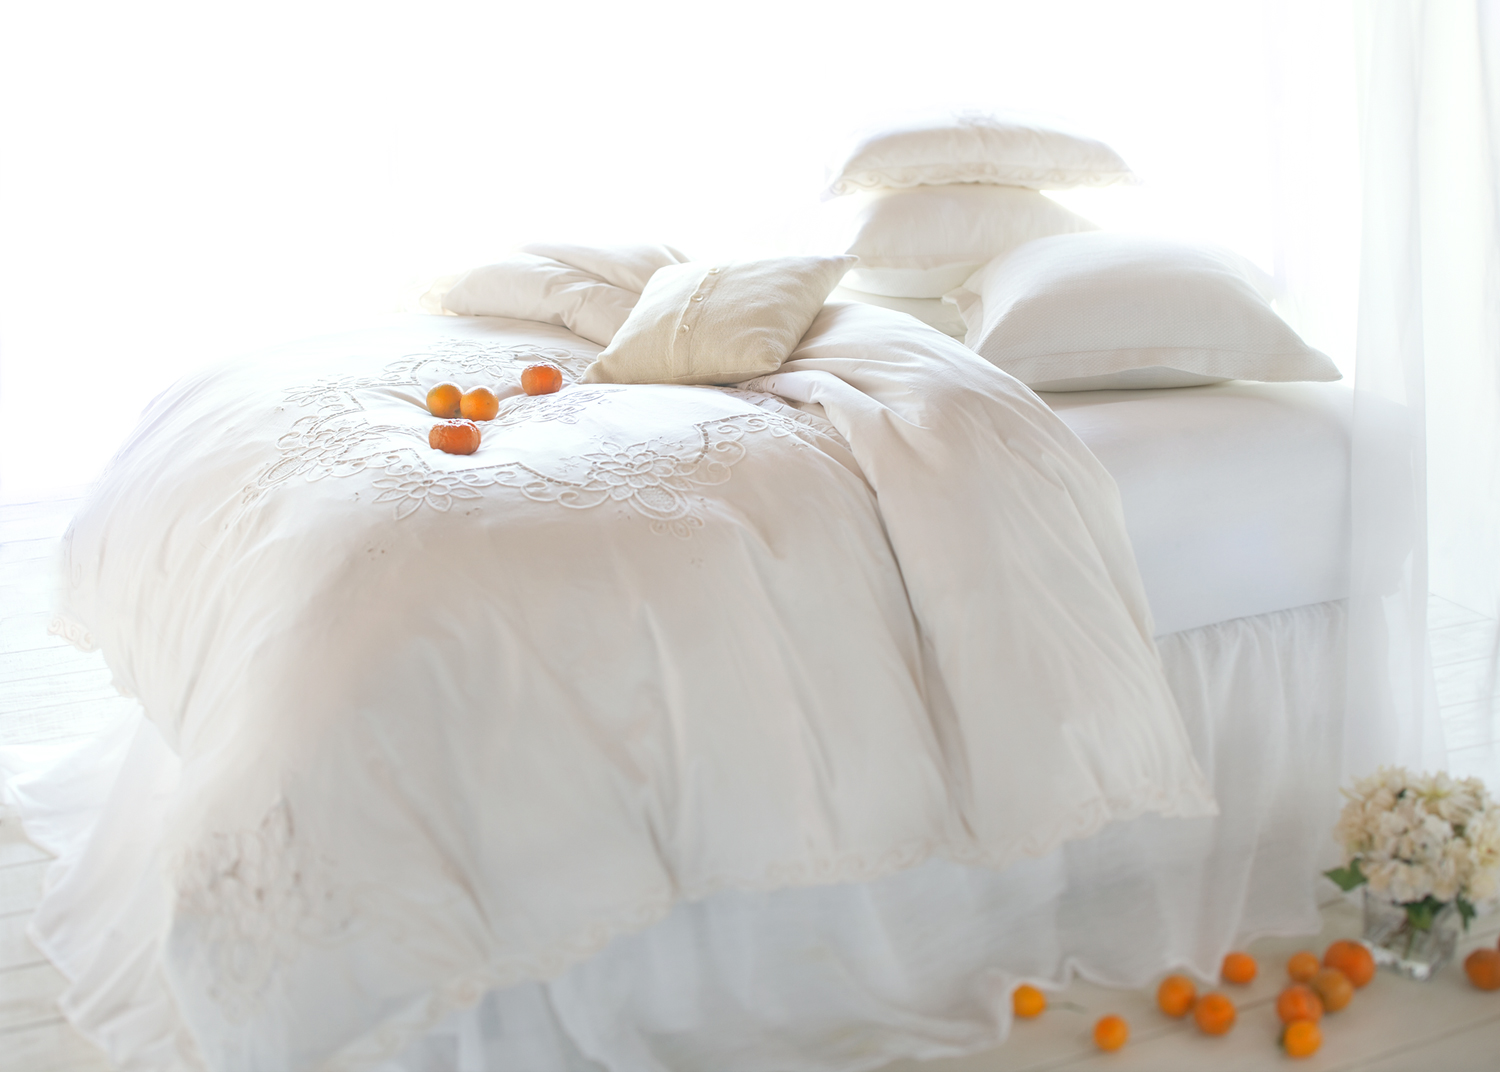 Bed in front of window with oranges